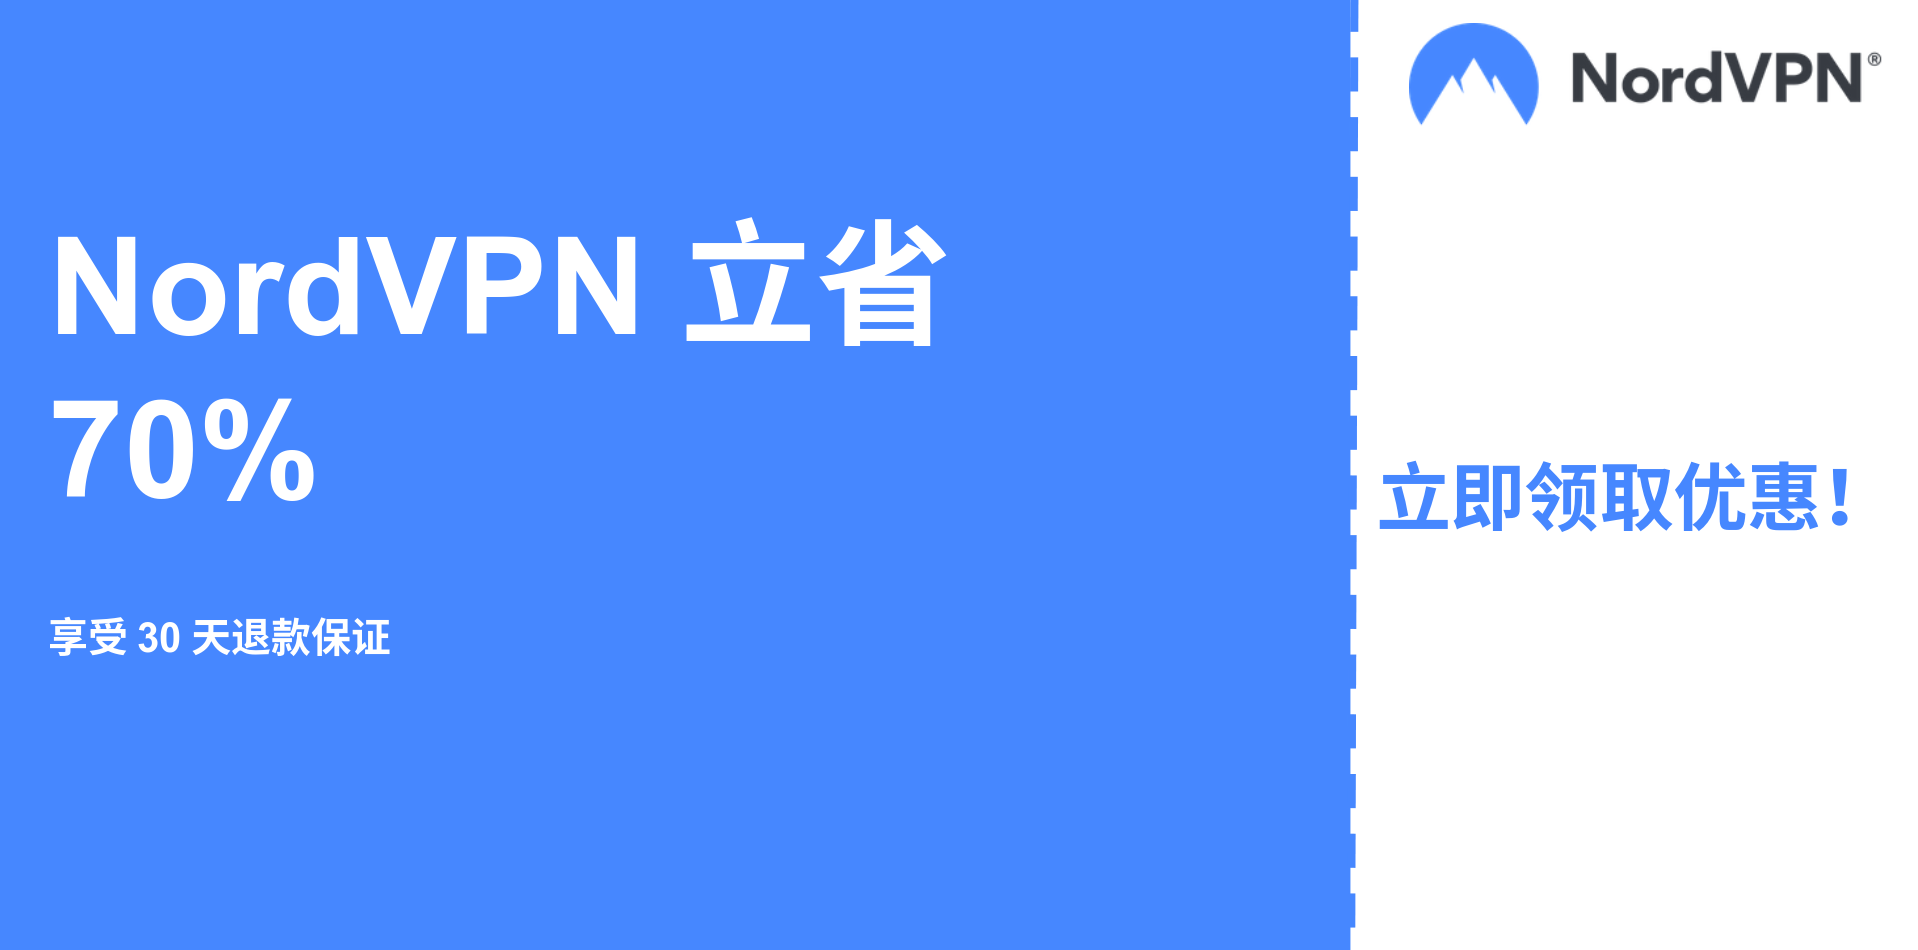 graphic of nordvpn main coupon banner showing 70% off